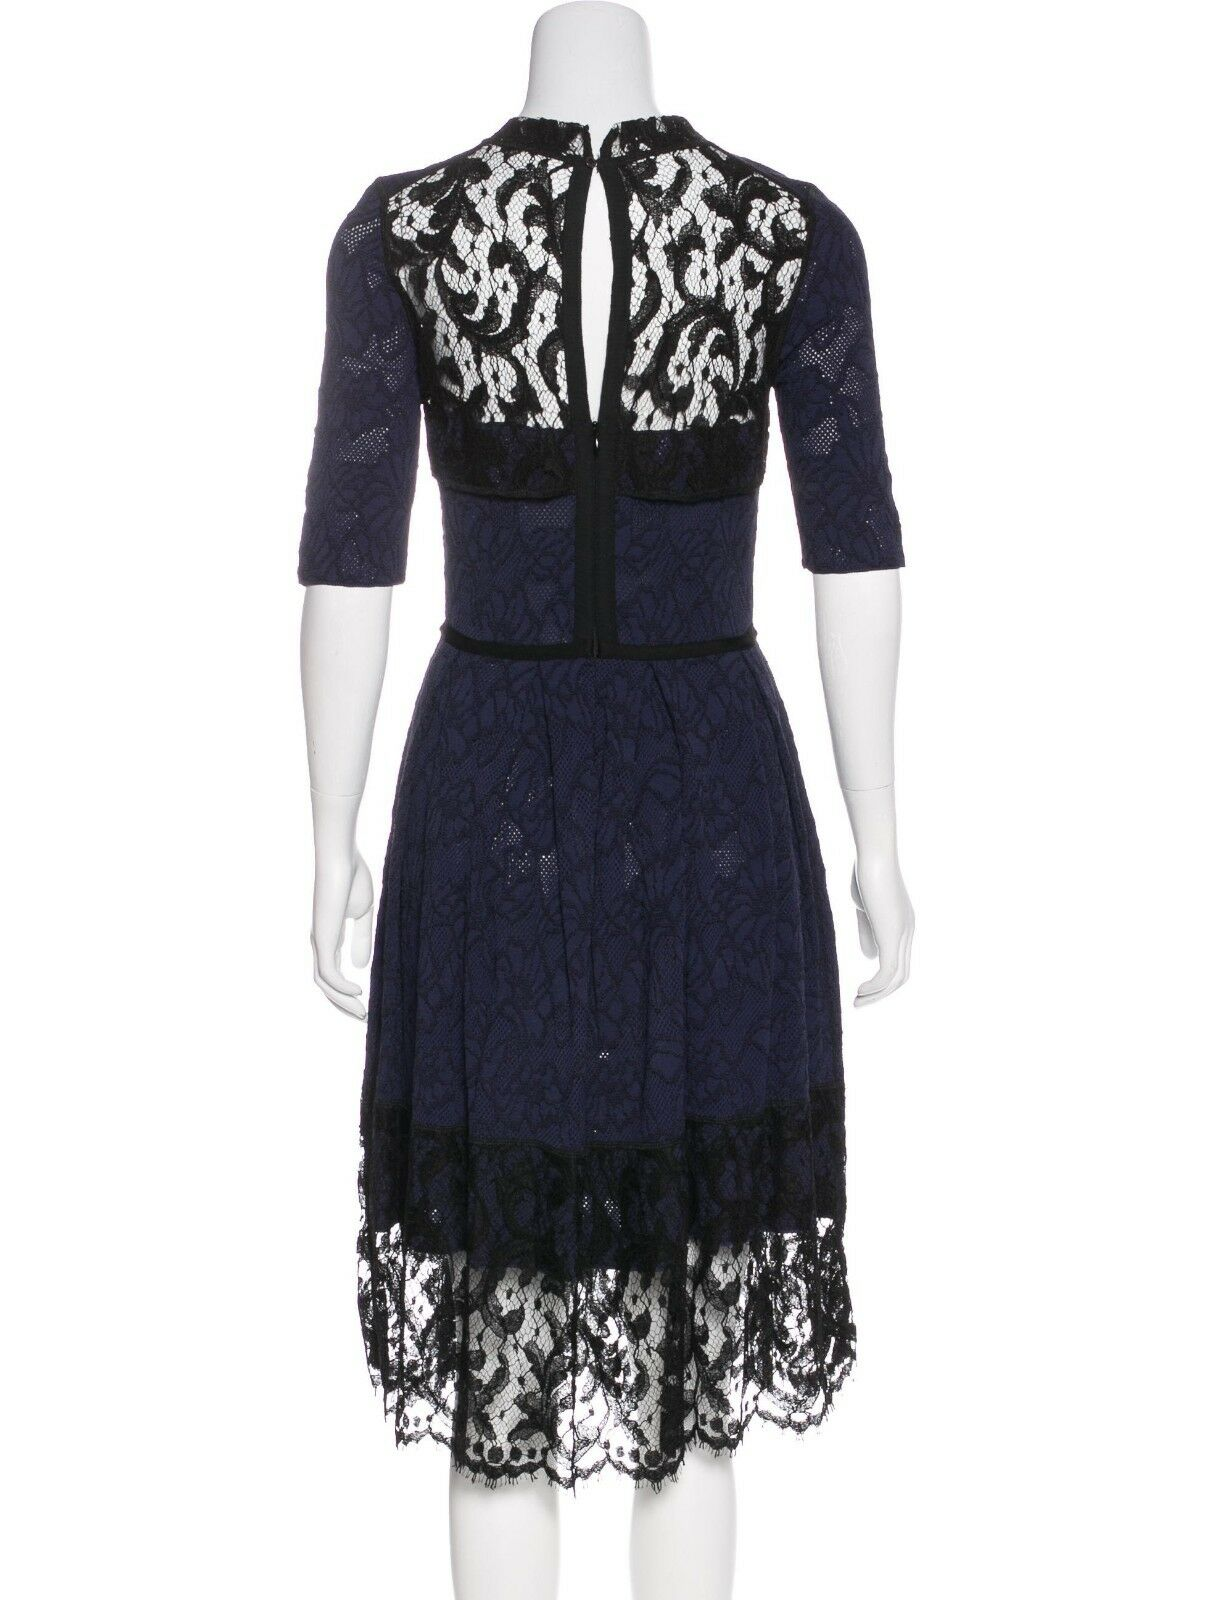 Oscar Oscar Oscar De La Renta bluee Lace & Knit dress 70a539